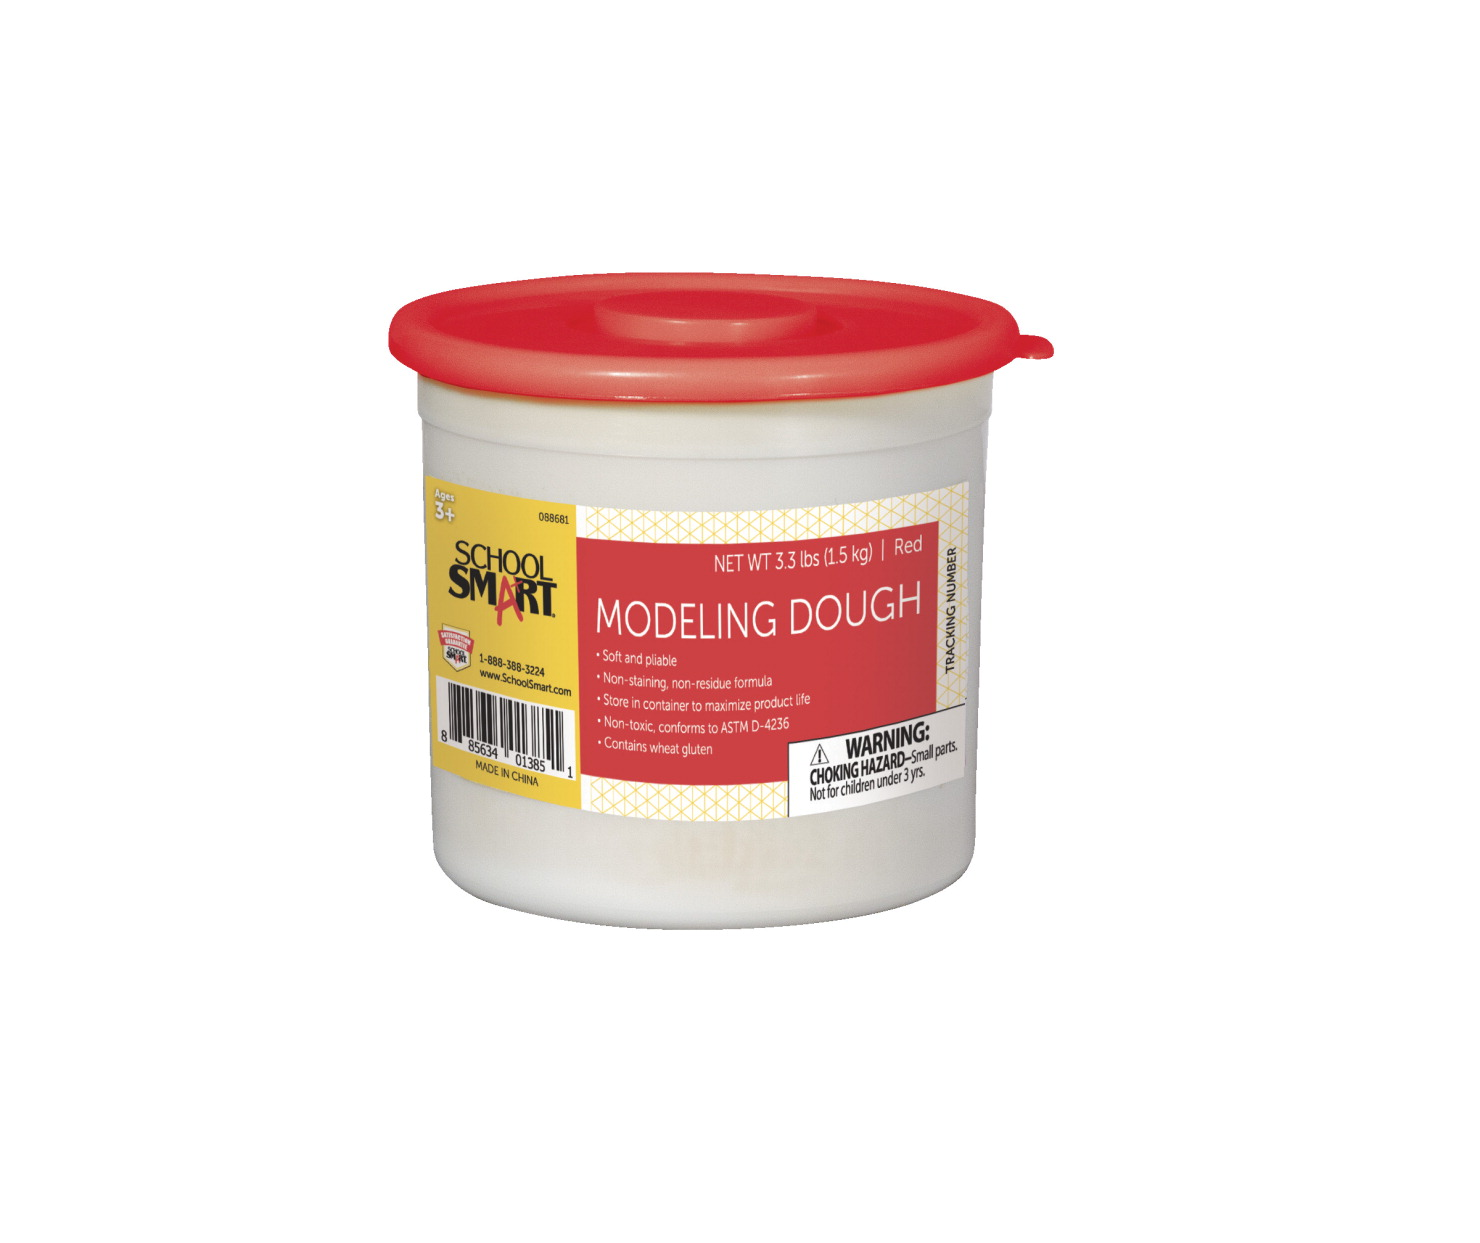 School Smart Non-Toxic Modeling Dough, 3.3 lb Tub, Red